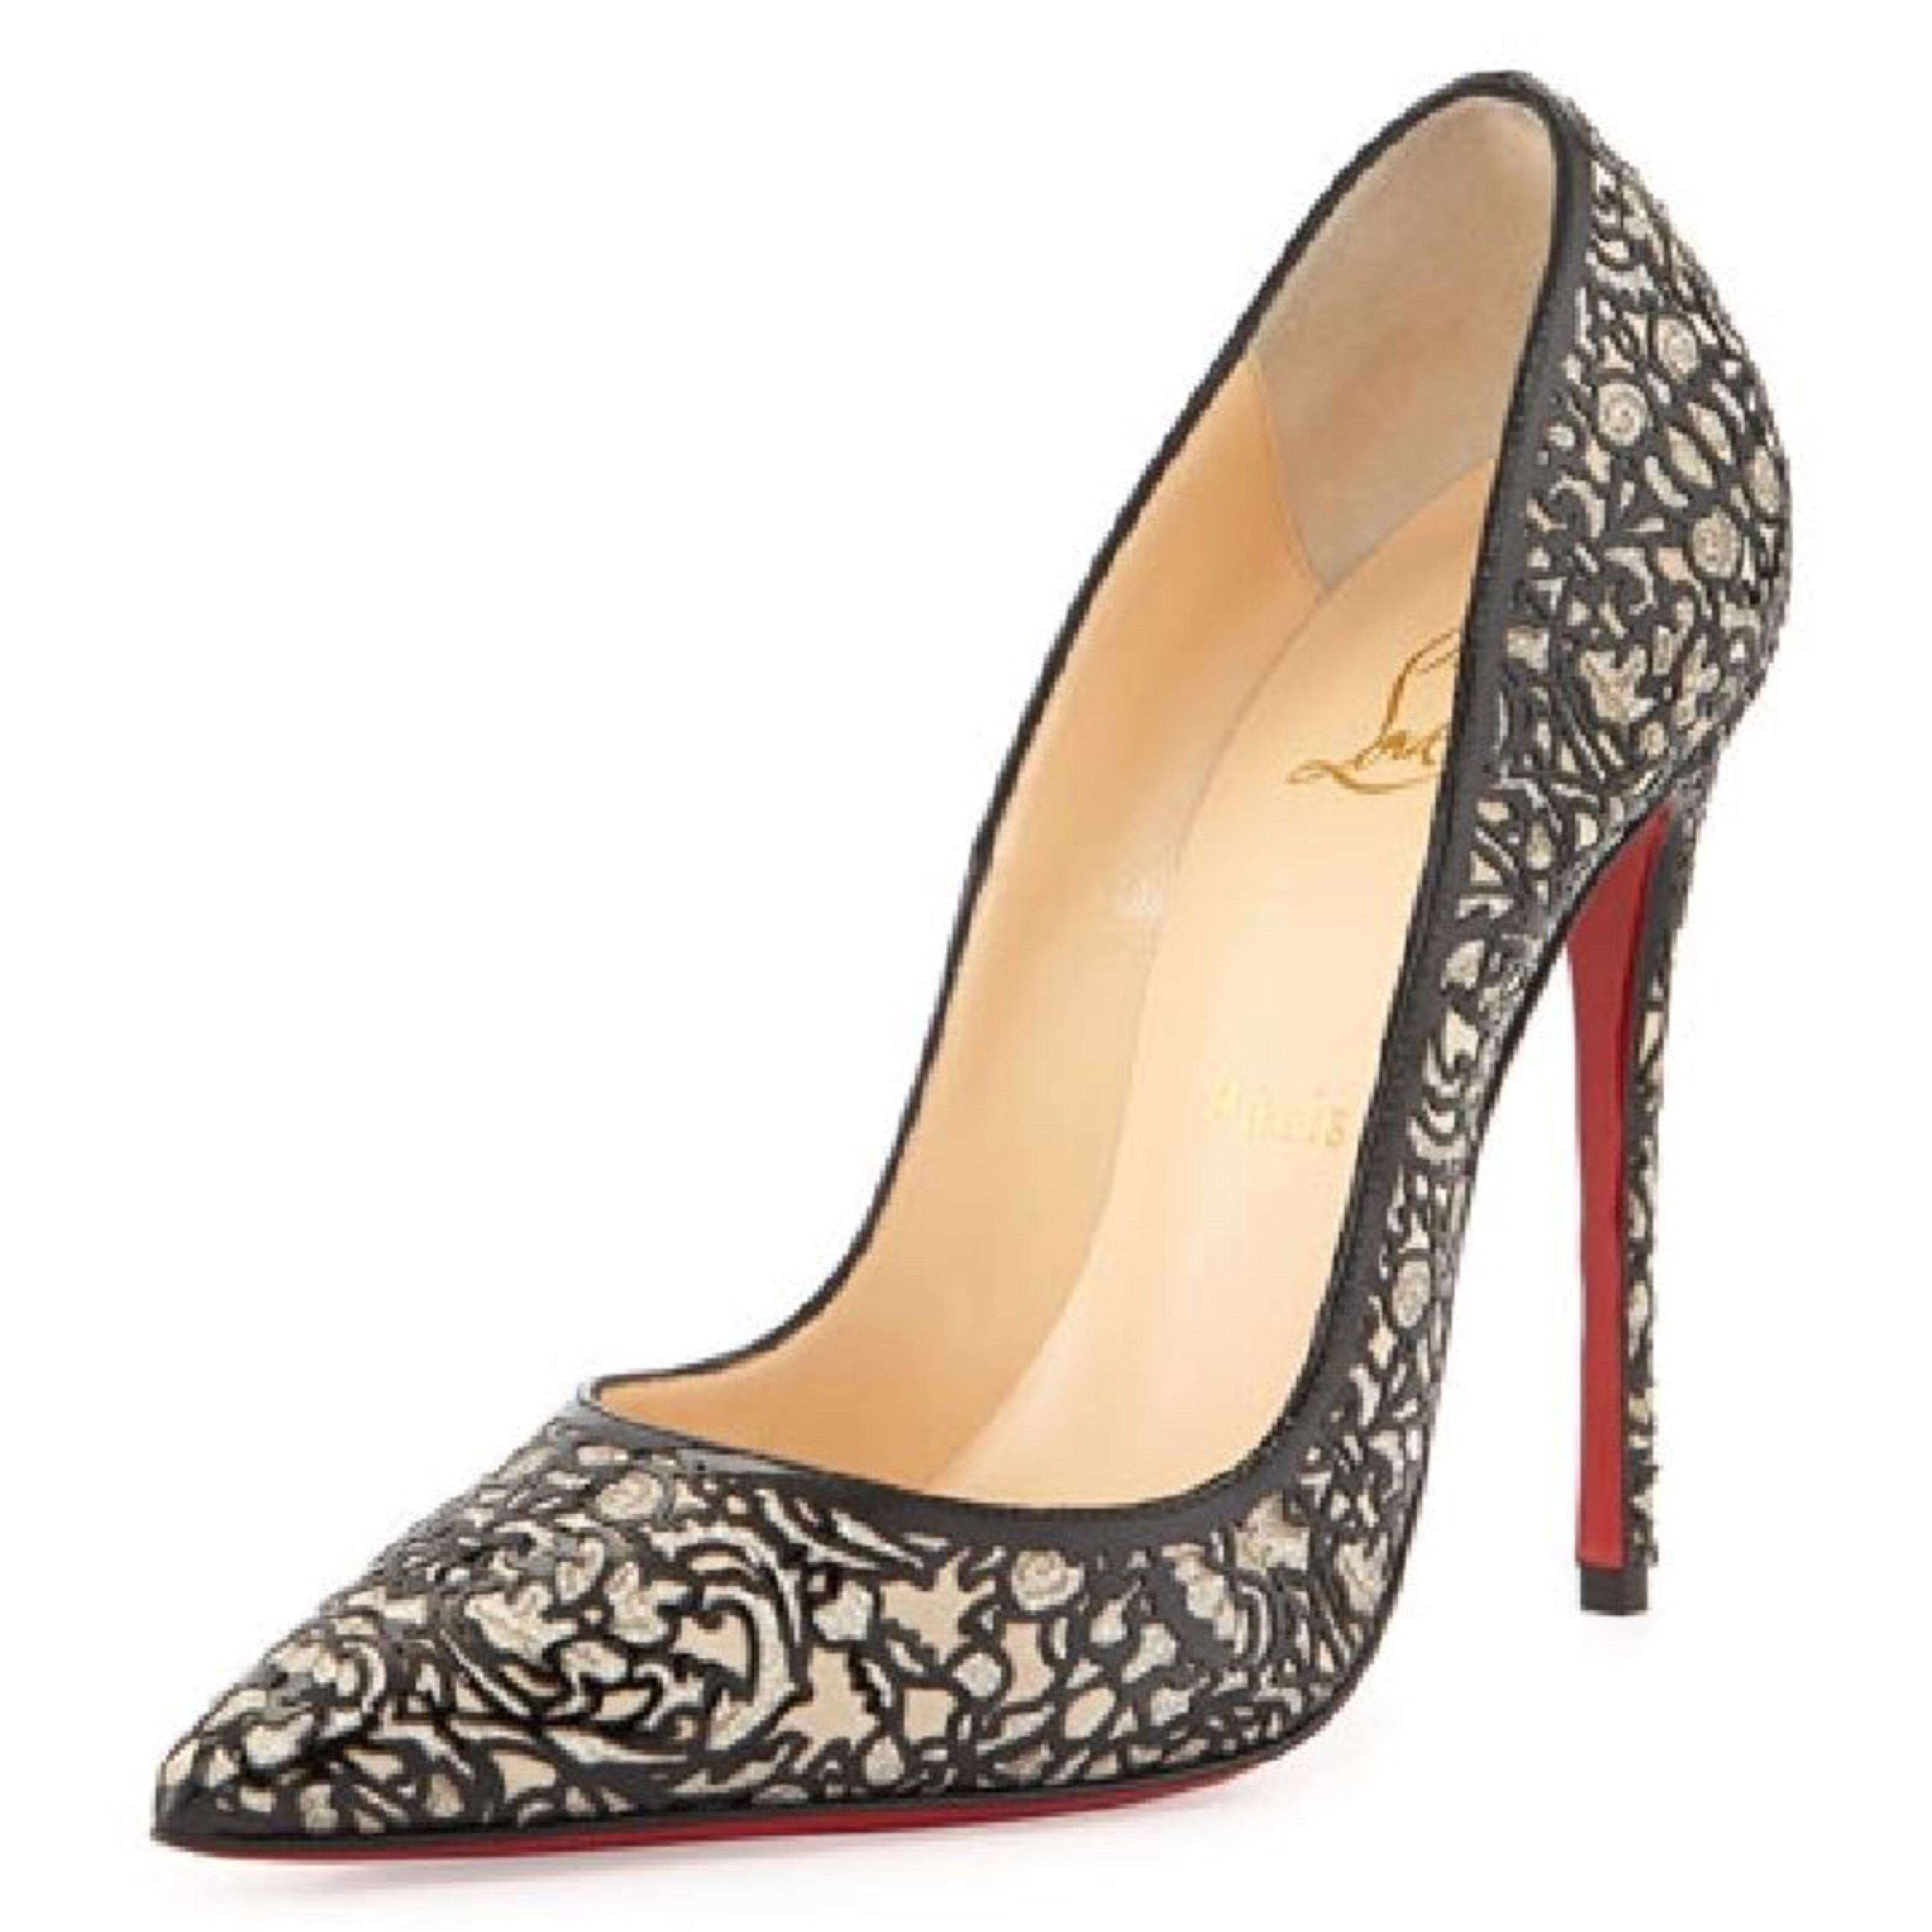 Christian Louboutin Patent Leather Cutout Pumps buy cheap 2015 new D2XviKtwg